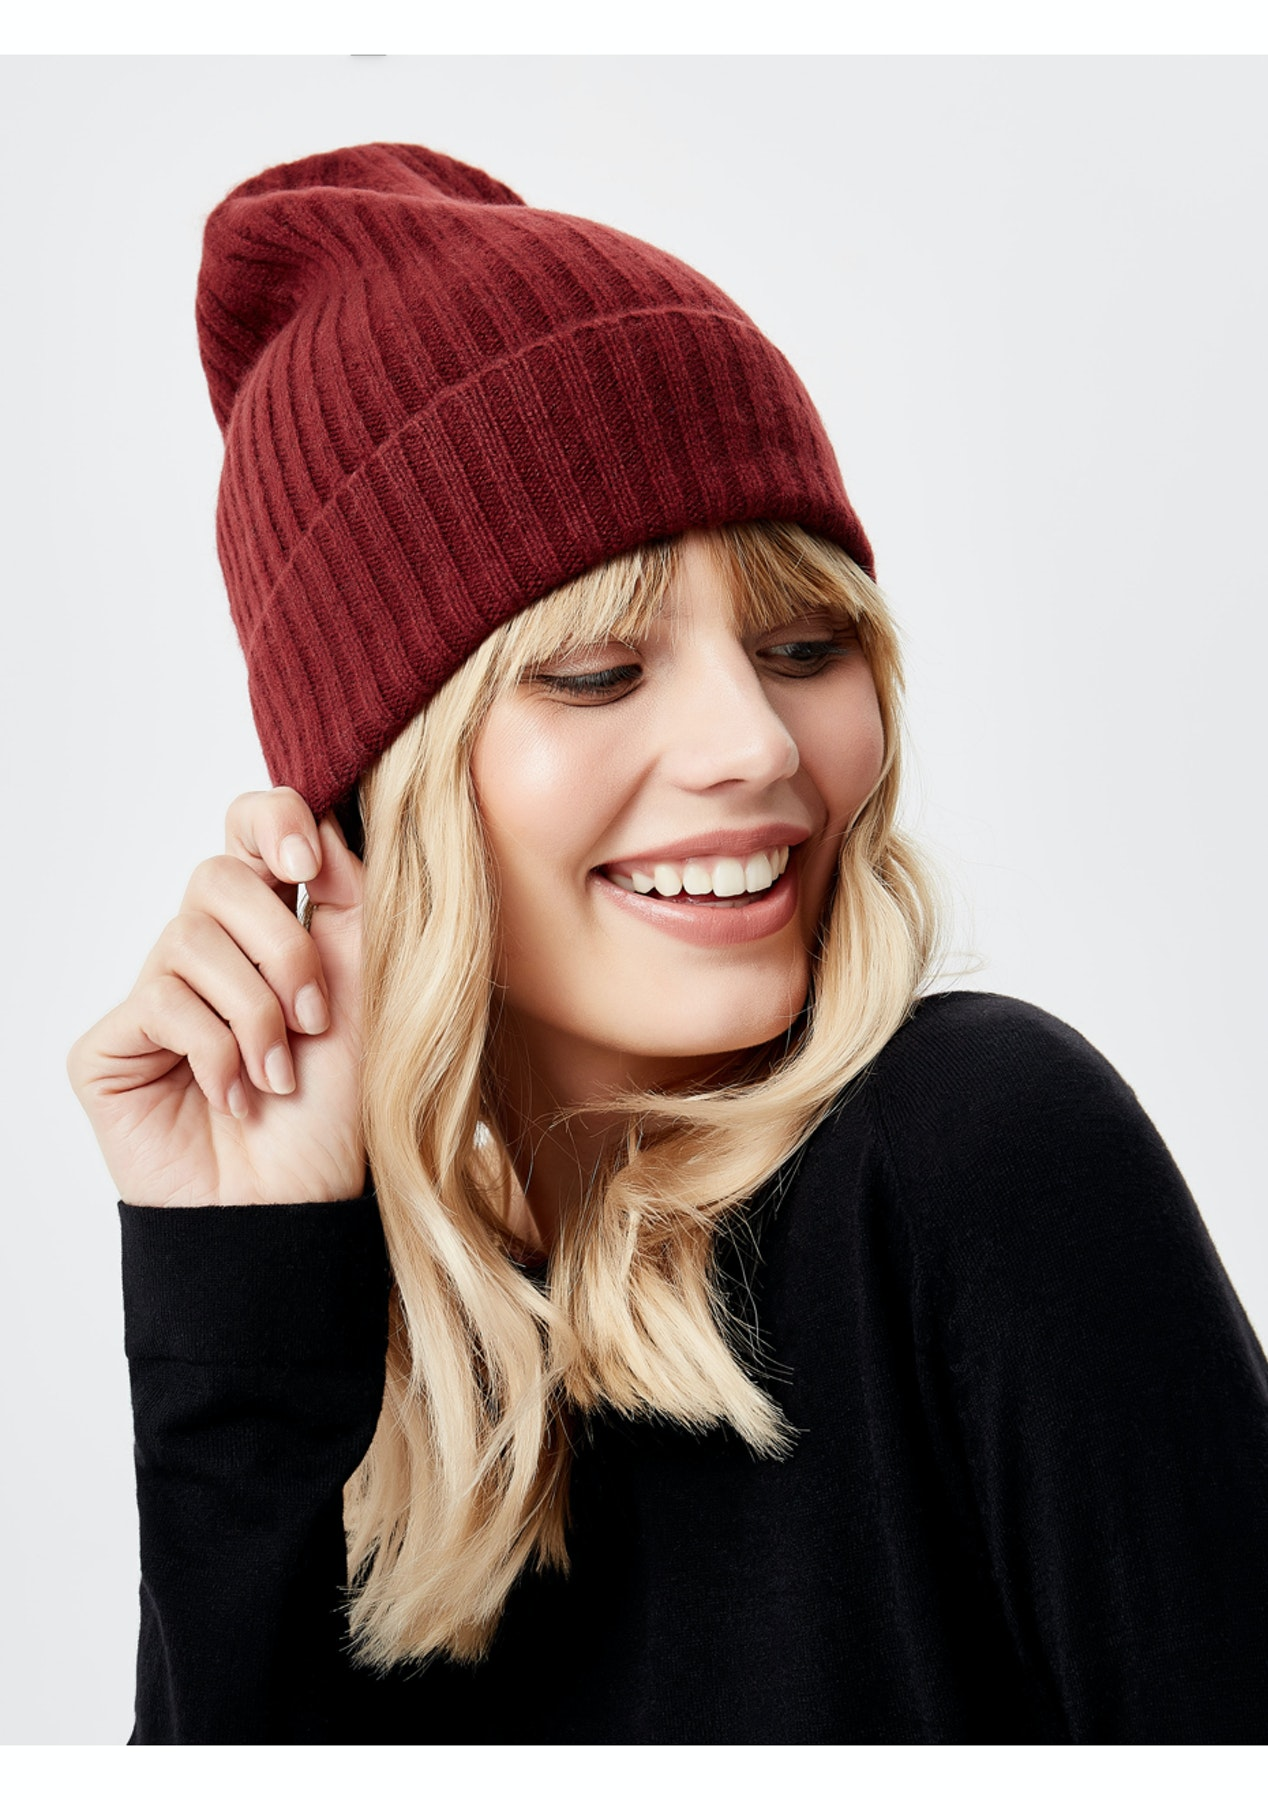 434df375d9088 Manode - 100% Cashmere Beanie - Wine - BACK BY DEMAND  Cashmere   Merino  Blends - Onceit